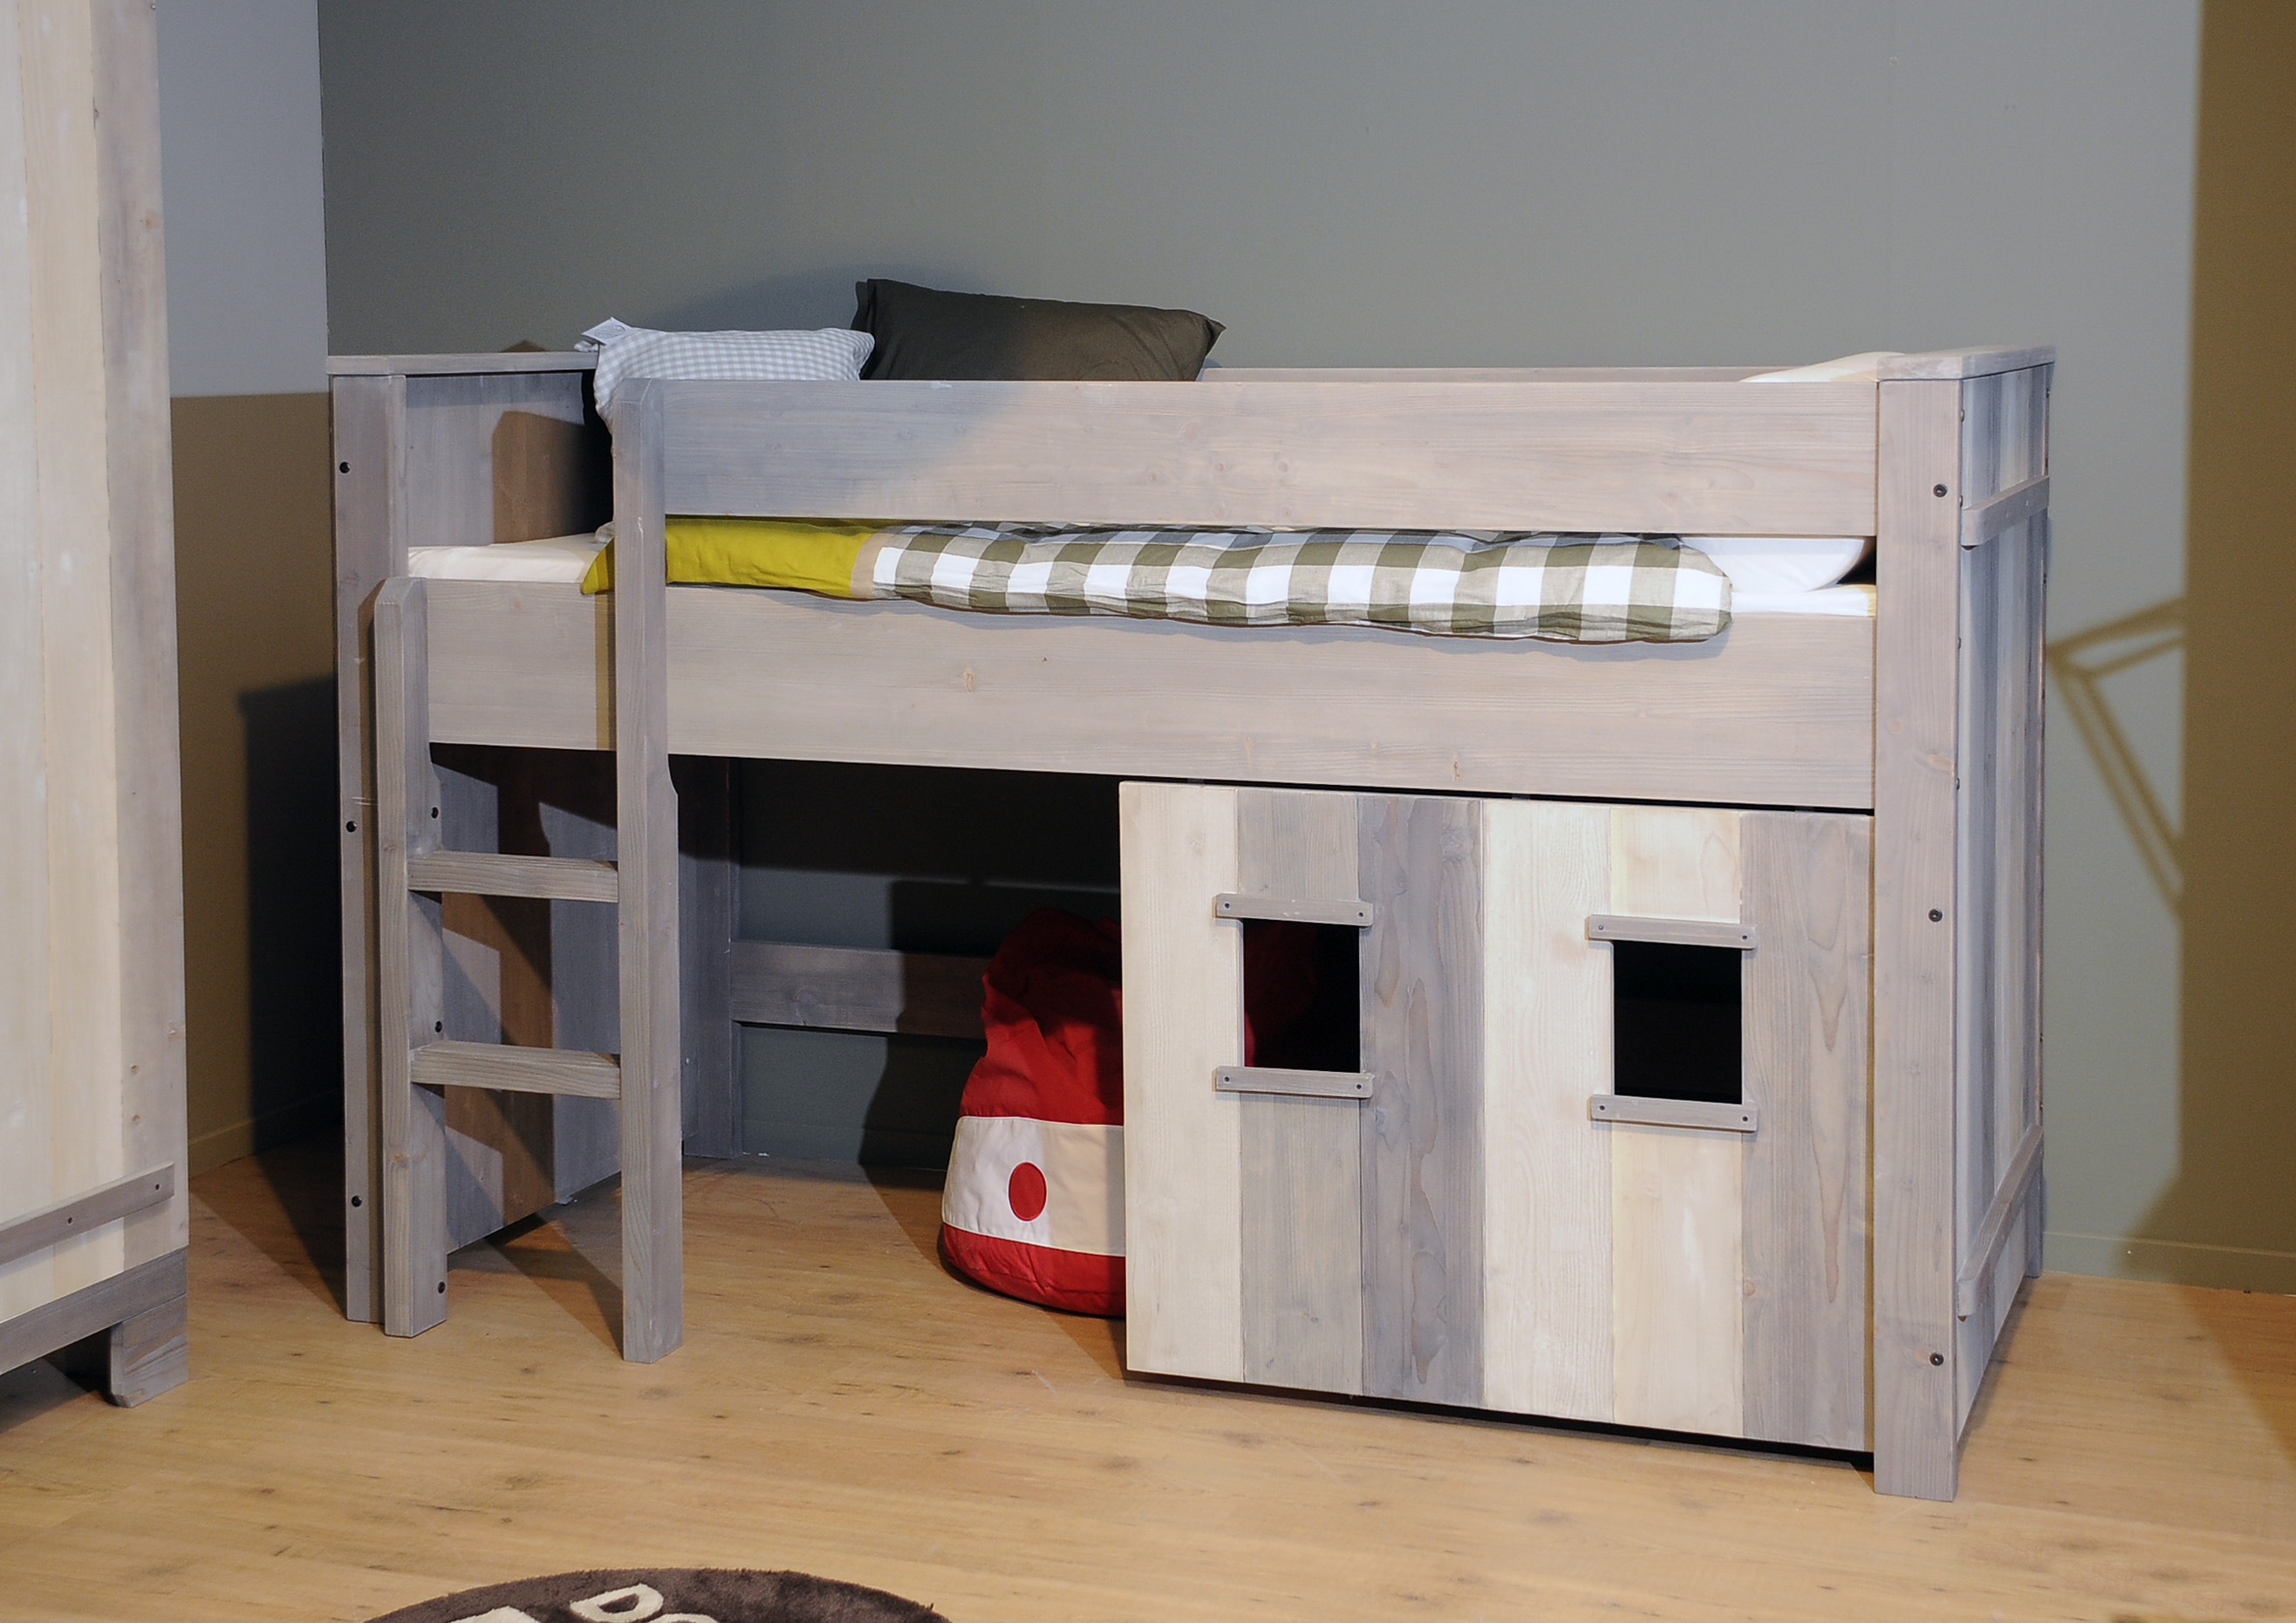 lit cabane le r ve de tout enfant abitare kids. Black Bedroom Furniture Sets. Home Design Ideas